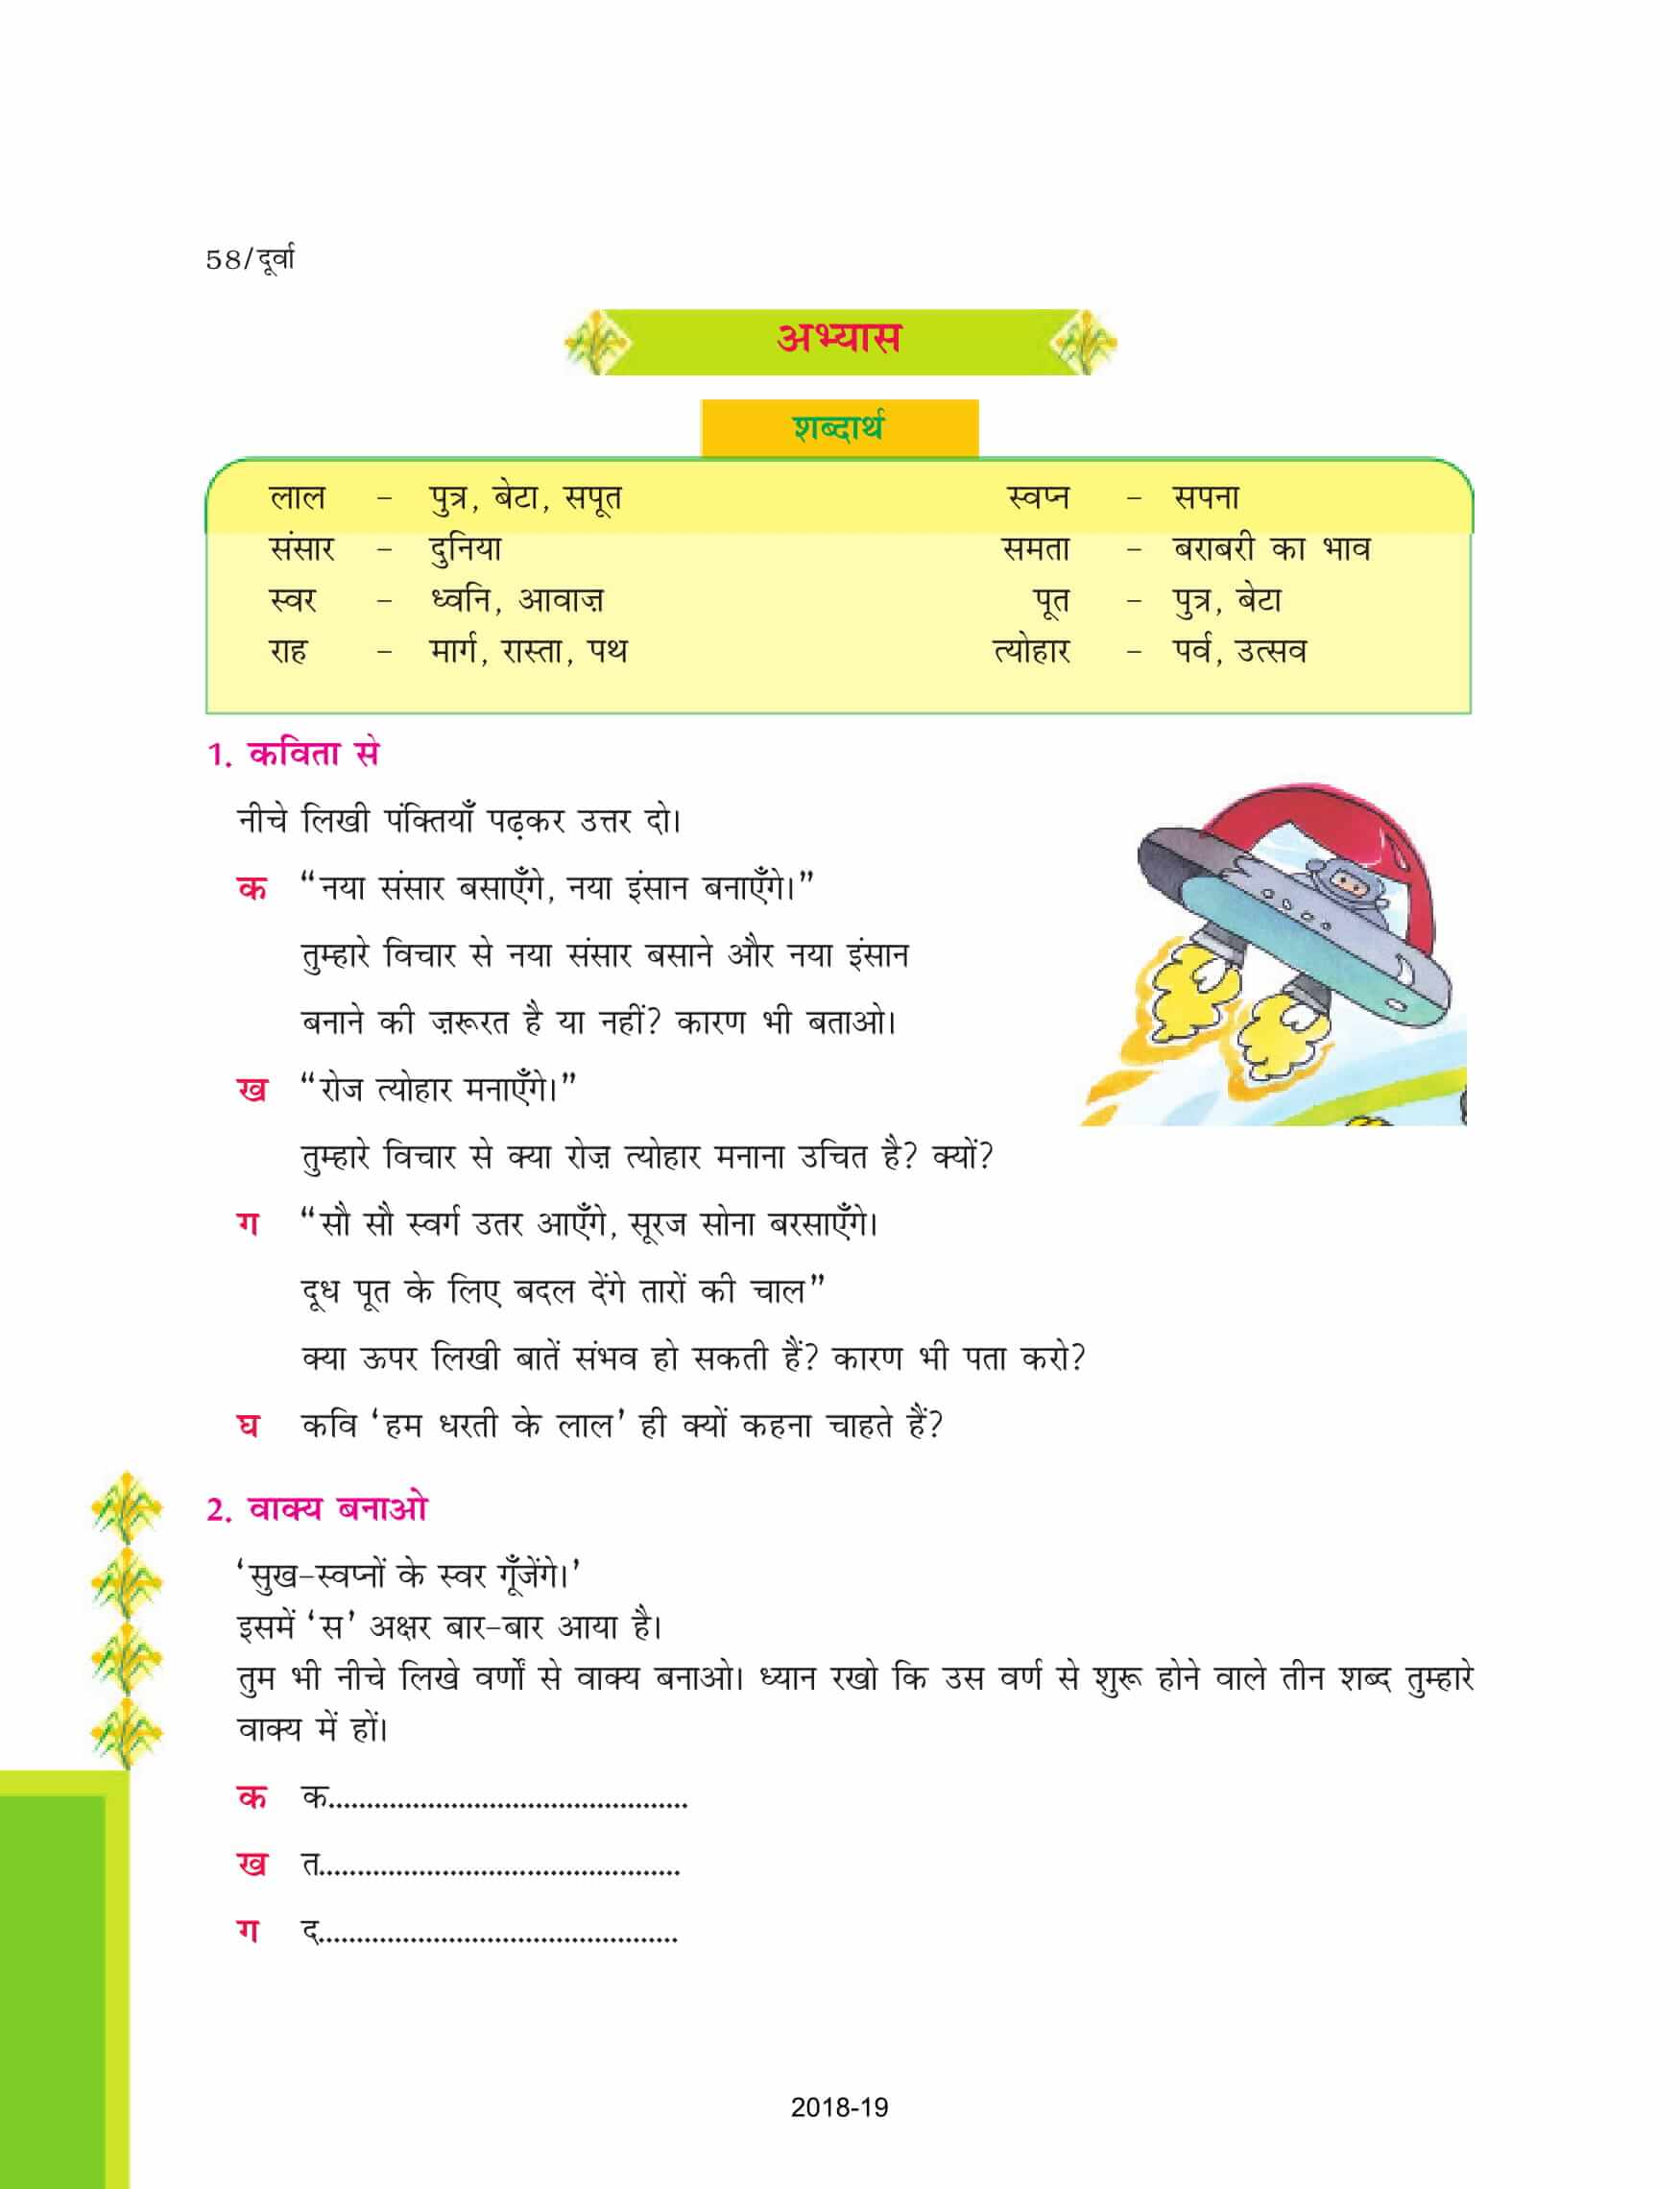 NCERT Solutions For Class 7 Hindi Durva Chapter 10 हम